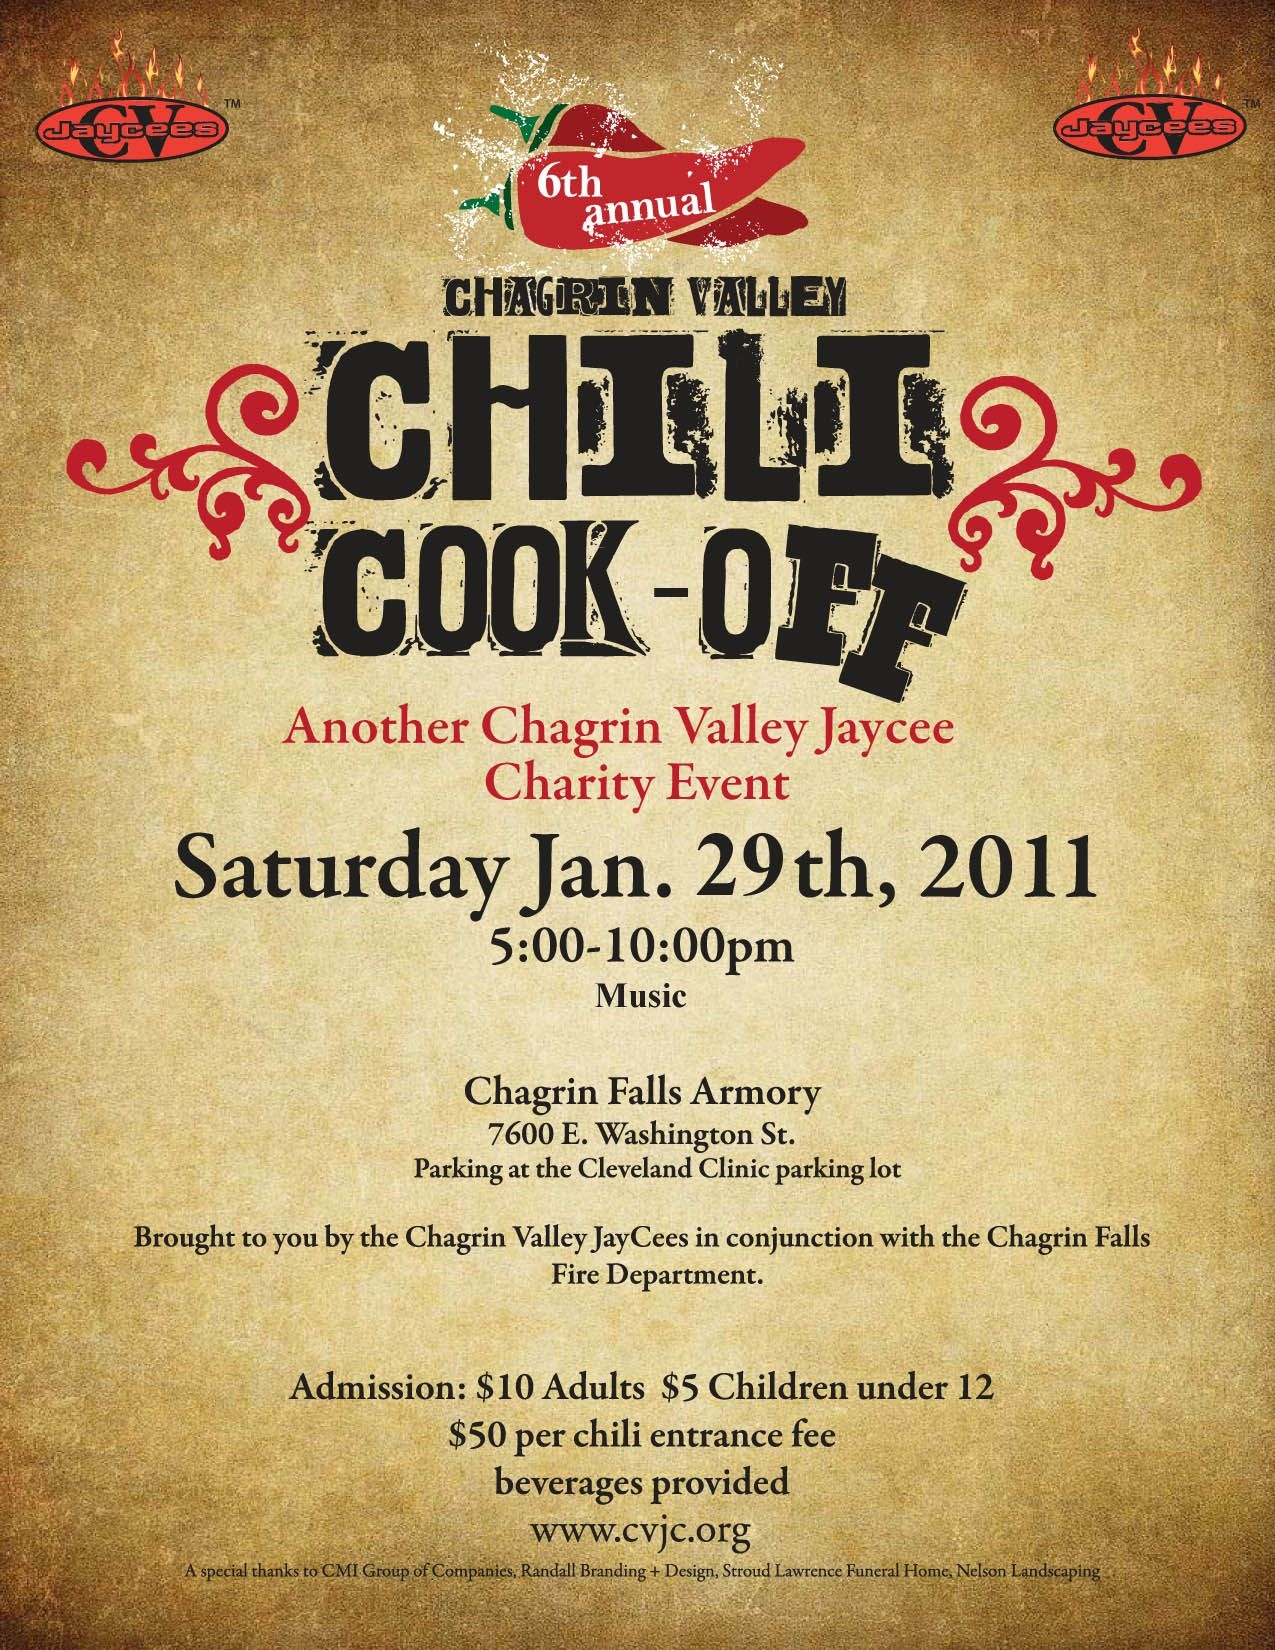 Chili Cook Off Flyer Template Free Printable - Wow - Image - Free Printable Flyers